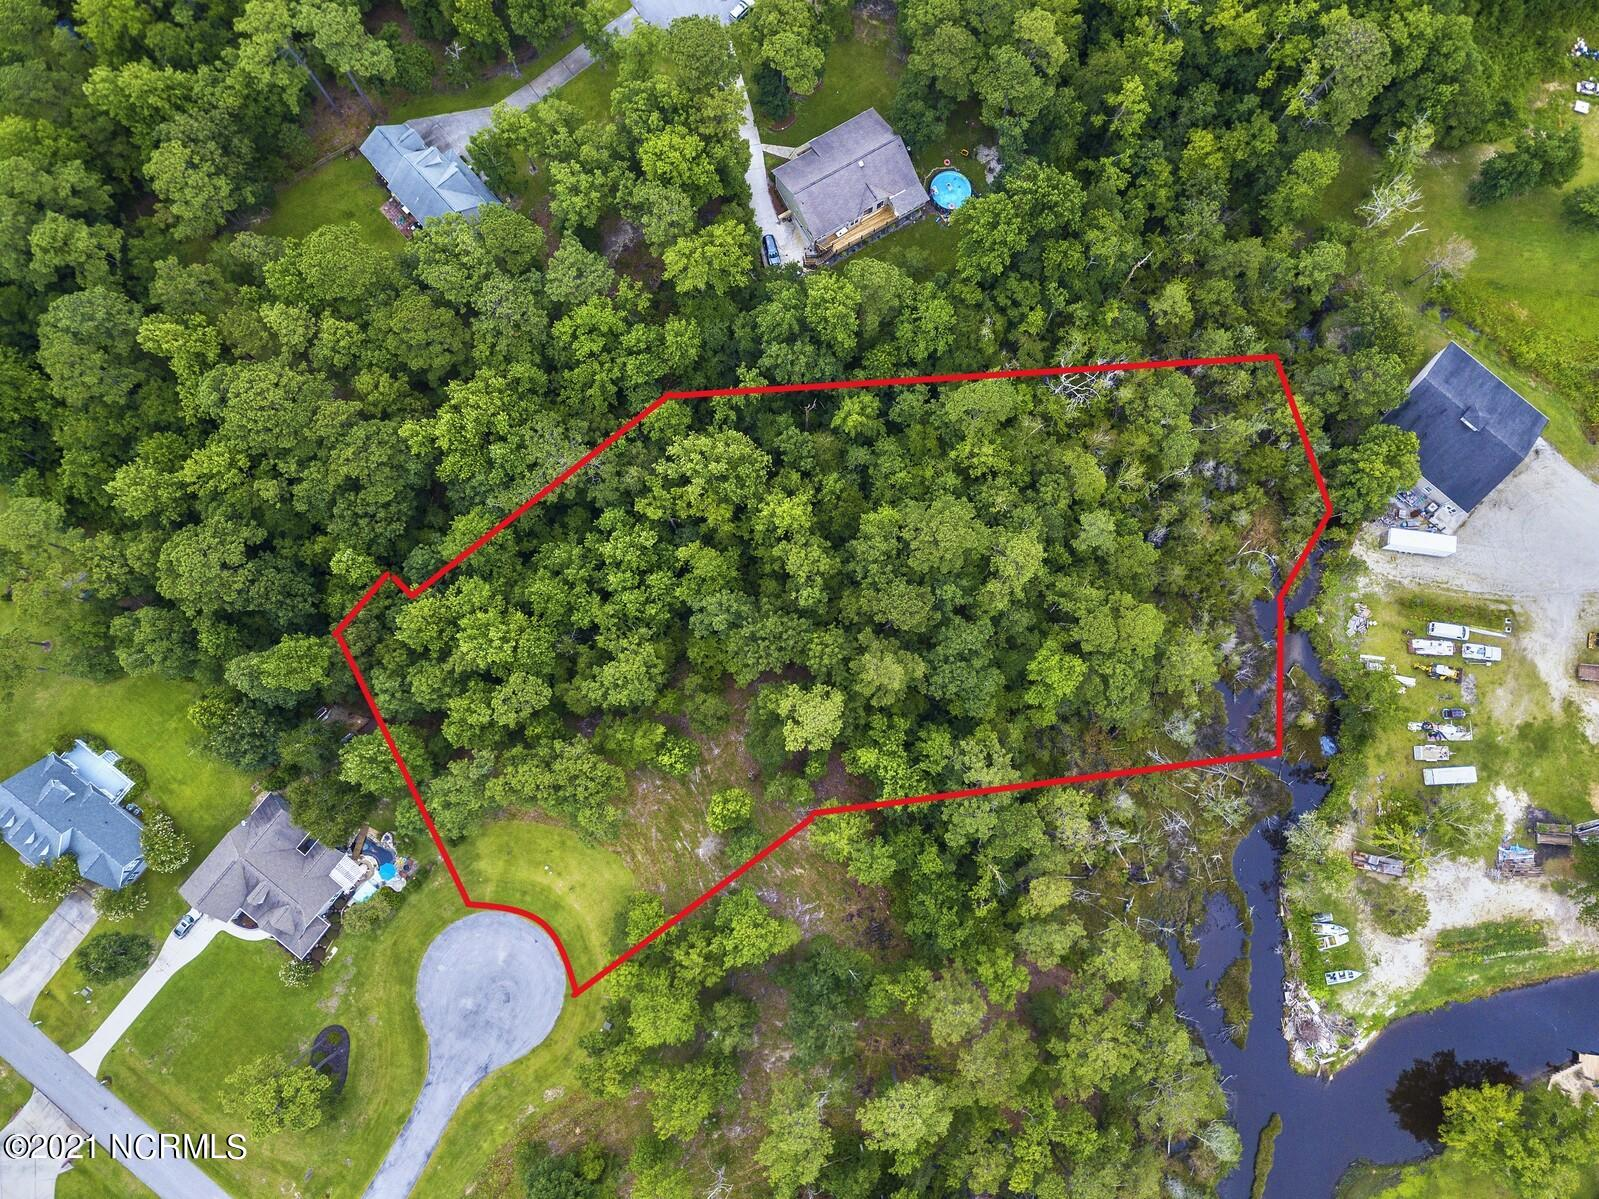 Expansive double lot combined to offer 1.9 acres situated on a bluff overlooking Turkey Creek in coastal NC for sale! This parcel has been partially cleared and there's over half an acre of high land up top to build your dream home... with the elevation of this lot, a basement just might be possible!  Since this used to be two lots, there are 2 four bedroom expired septic permits on file so these are well drained soils with septic options to meet your needs. Before you get any bright ideas, no, this lot cannot be resubdivided, so you get one large estate sized parcel to spread out with privacy. County water is available thru ONWASA, and the reasonable community covenants require a minimum heated square footage of 1400 for a home. Creeks Edge is a waterfront community offering low HOA dues of $300 which includes street lights, road maintenance, entrance surveillance, kayak launch, and fishing pier! An extra $100/yr assessment means the HOA mows your lot too! Drop a line in and you may catch a flounder or red drum to fry up for dinner! Conveniently located between Jacksonville and Wilmington, it's a short drive to shopping, restaurants, and the Topsail Island beaches. If you are a boater, there's a fantastic public boat ramp at the end of Turkey Point Road maybe a mile from this community... but don't tell everyone, it's a local secret! Call a Realtor who understands land today for more information and an appointment to walk this parcel!